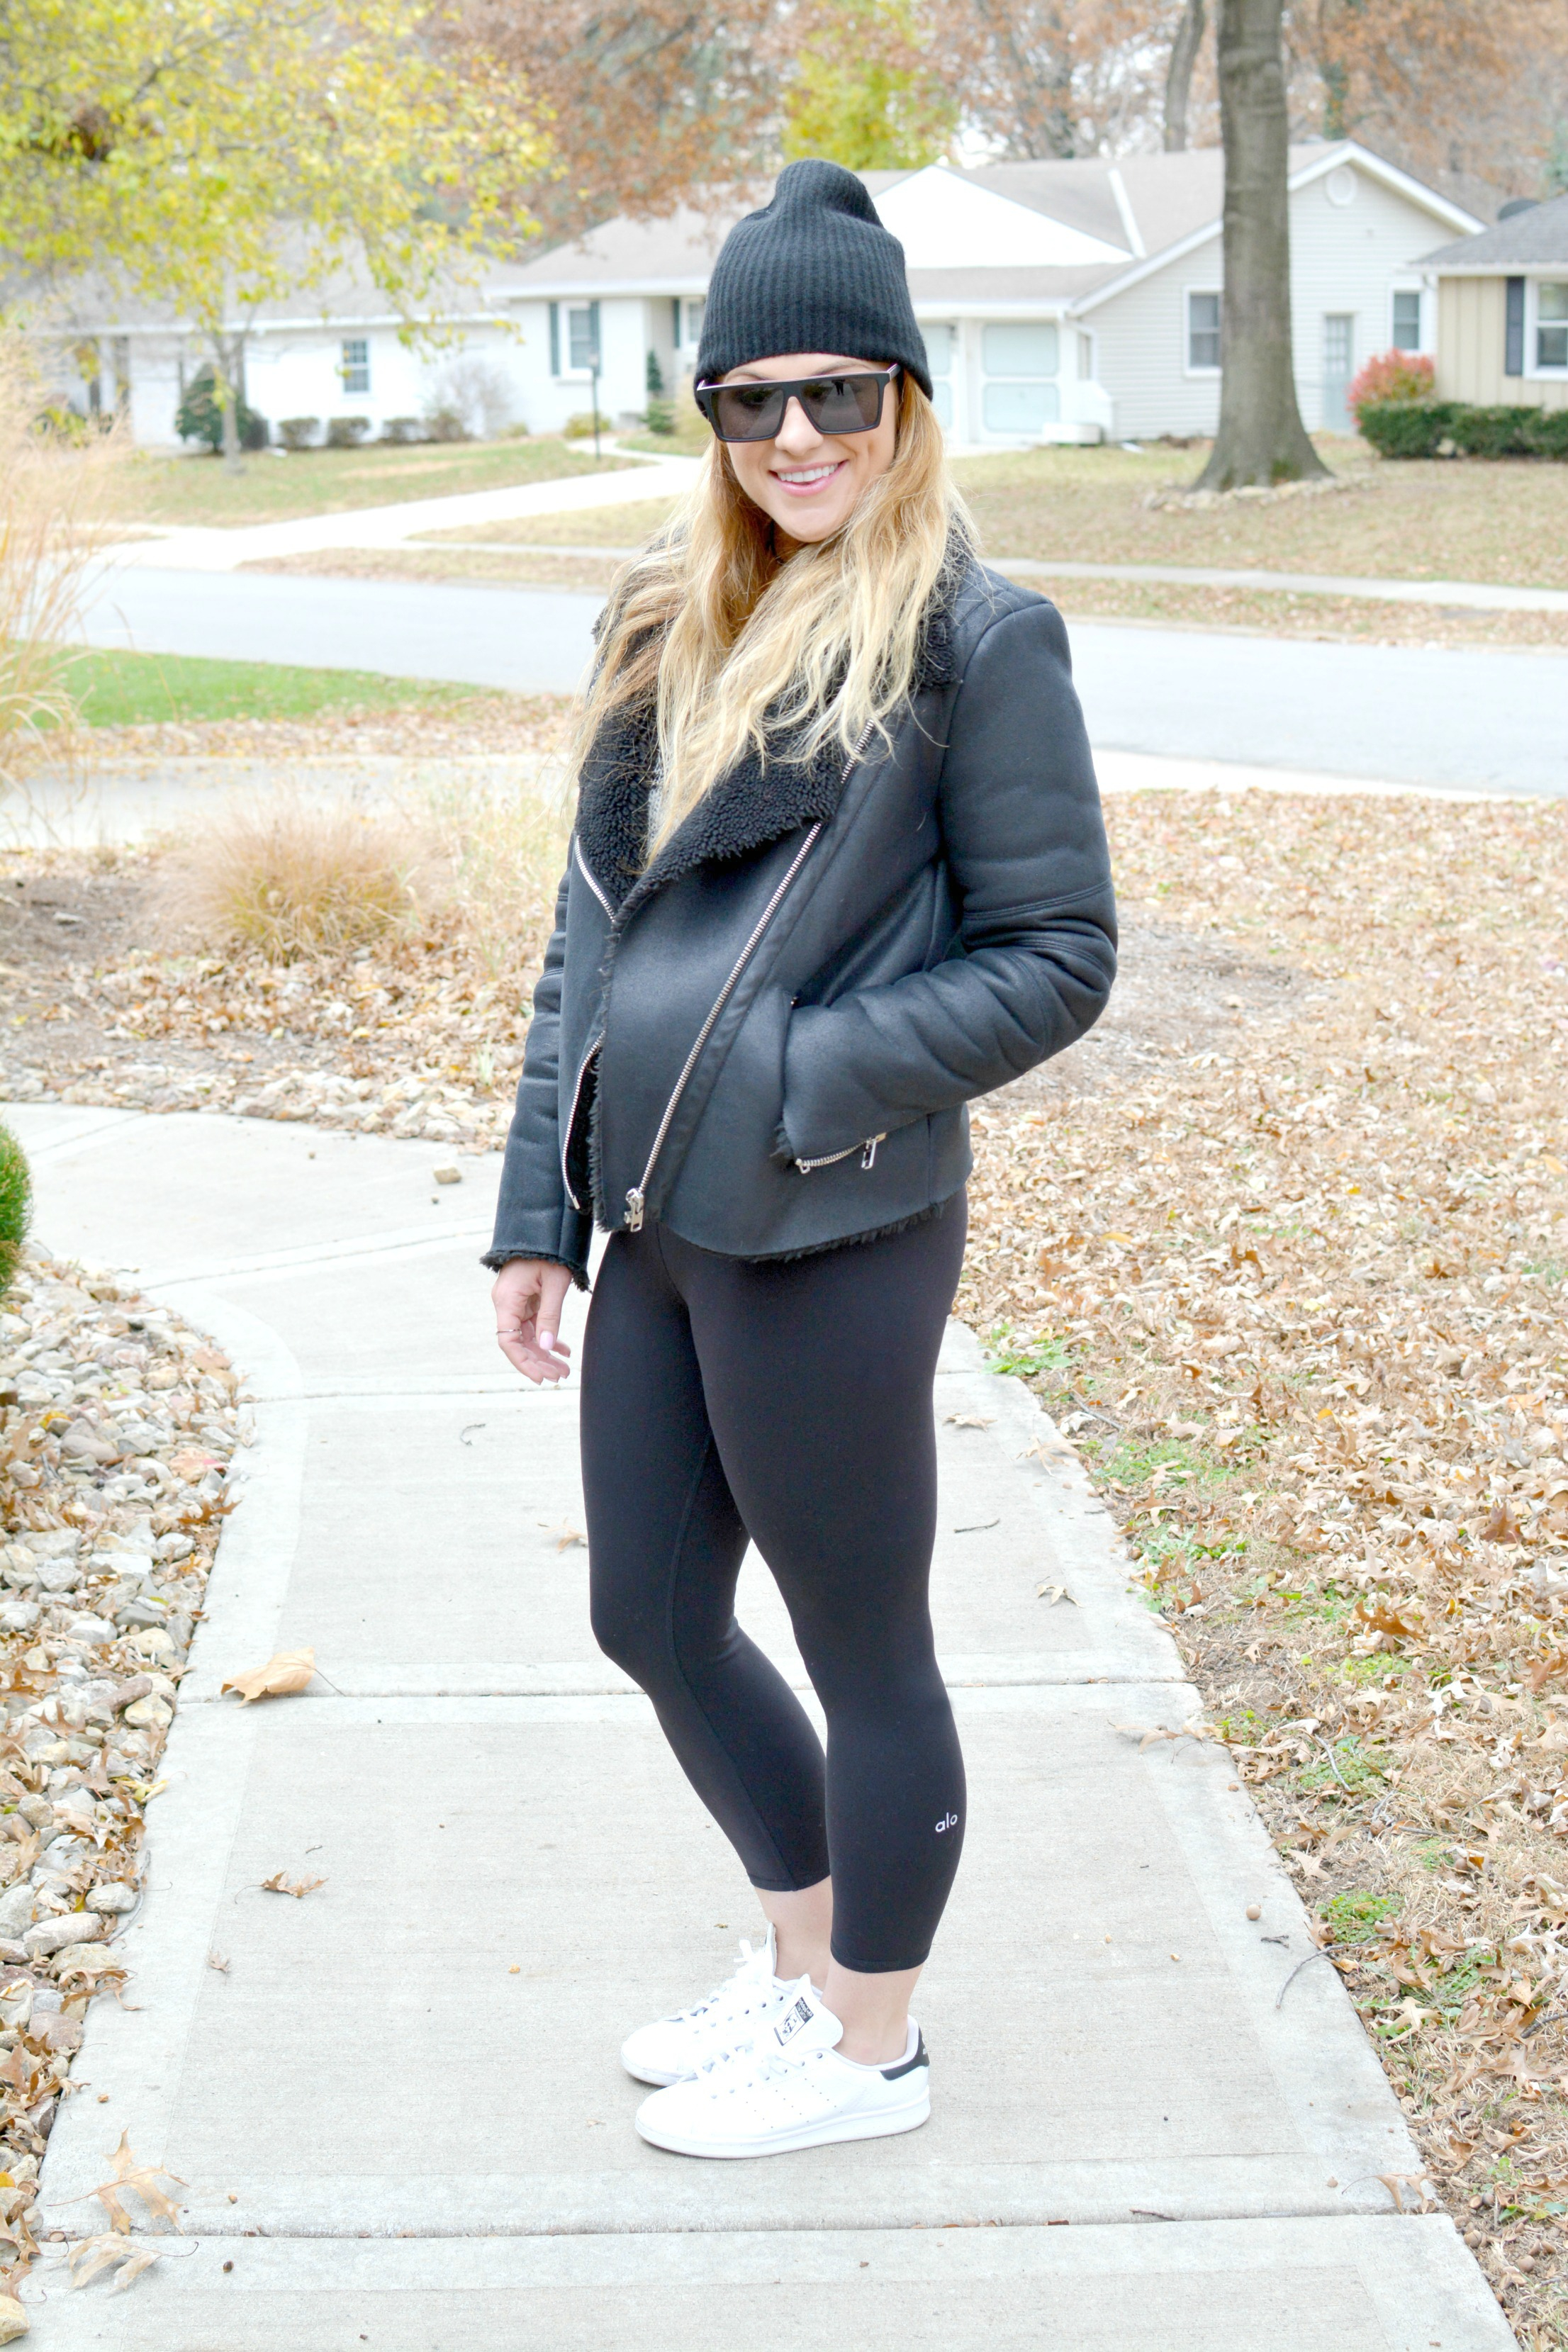 Ashley from LSR in a shearling jacket, Alo leggings, Adidas sneakers, and a beanie